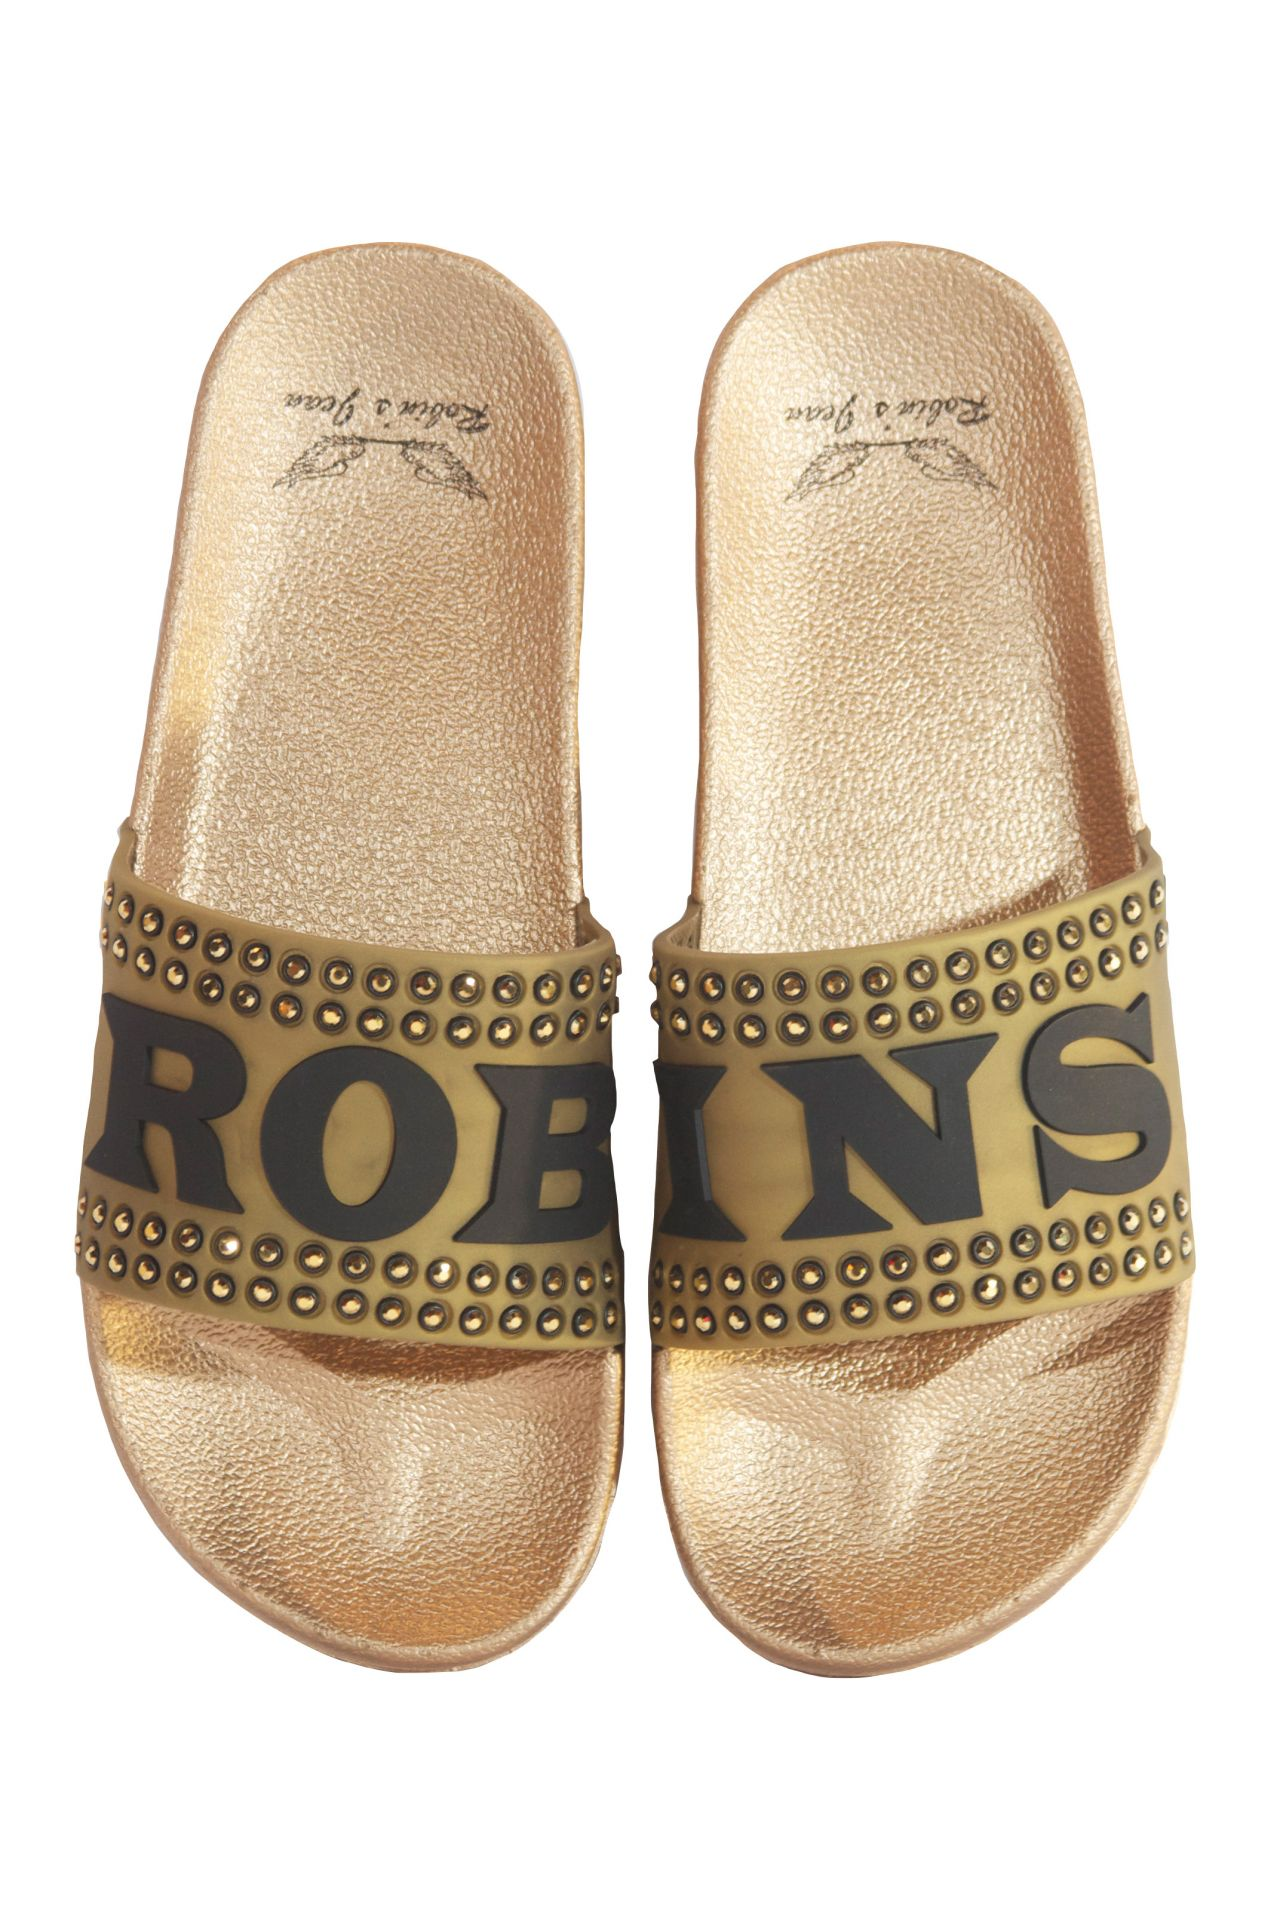 ROBIN SLIDES IN GOLD WITH GOLD CRYSTALS